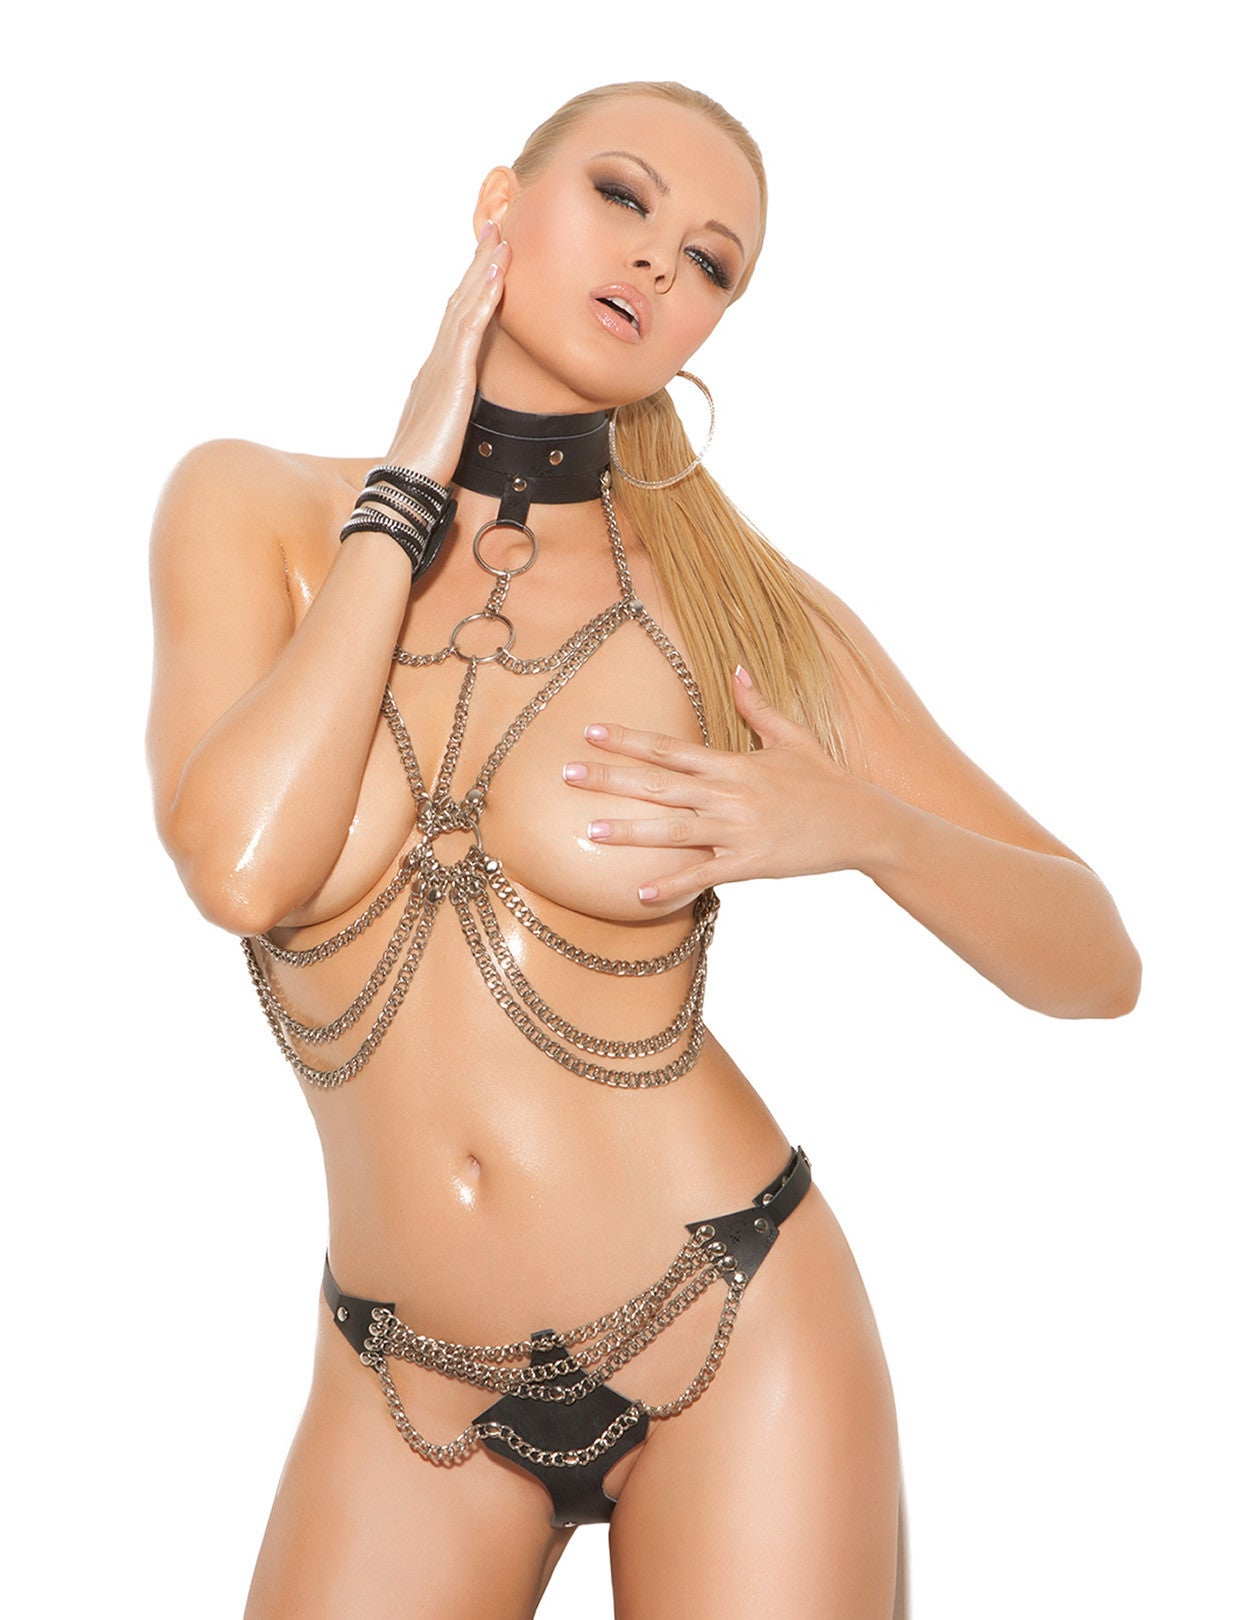 Chain Vest with Leather Collar and Thong - just damn sexy  - 1